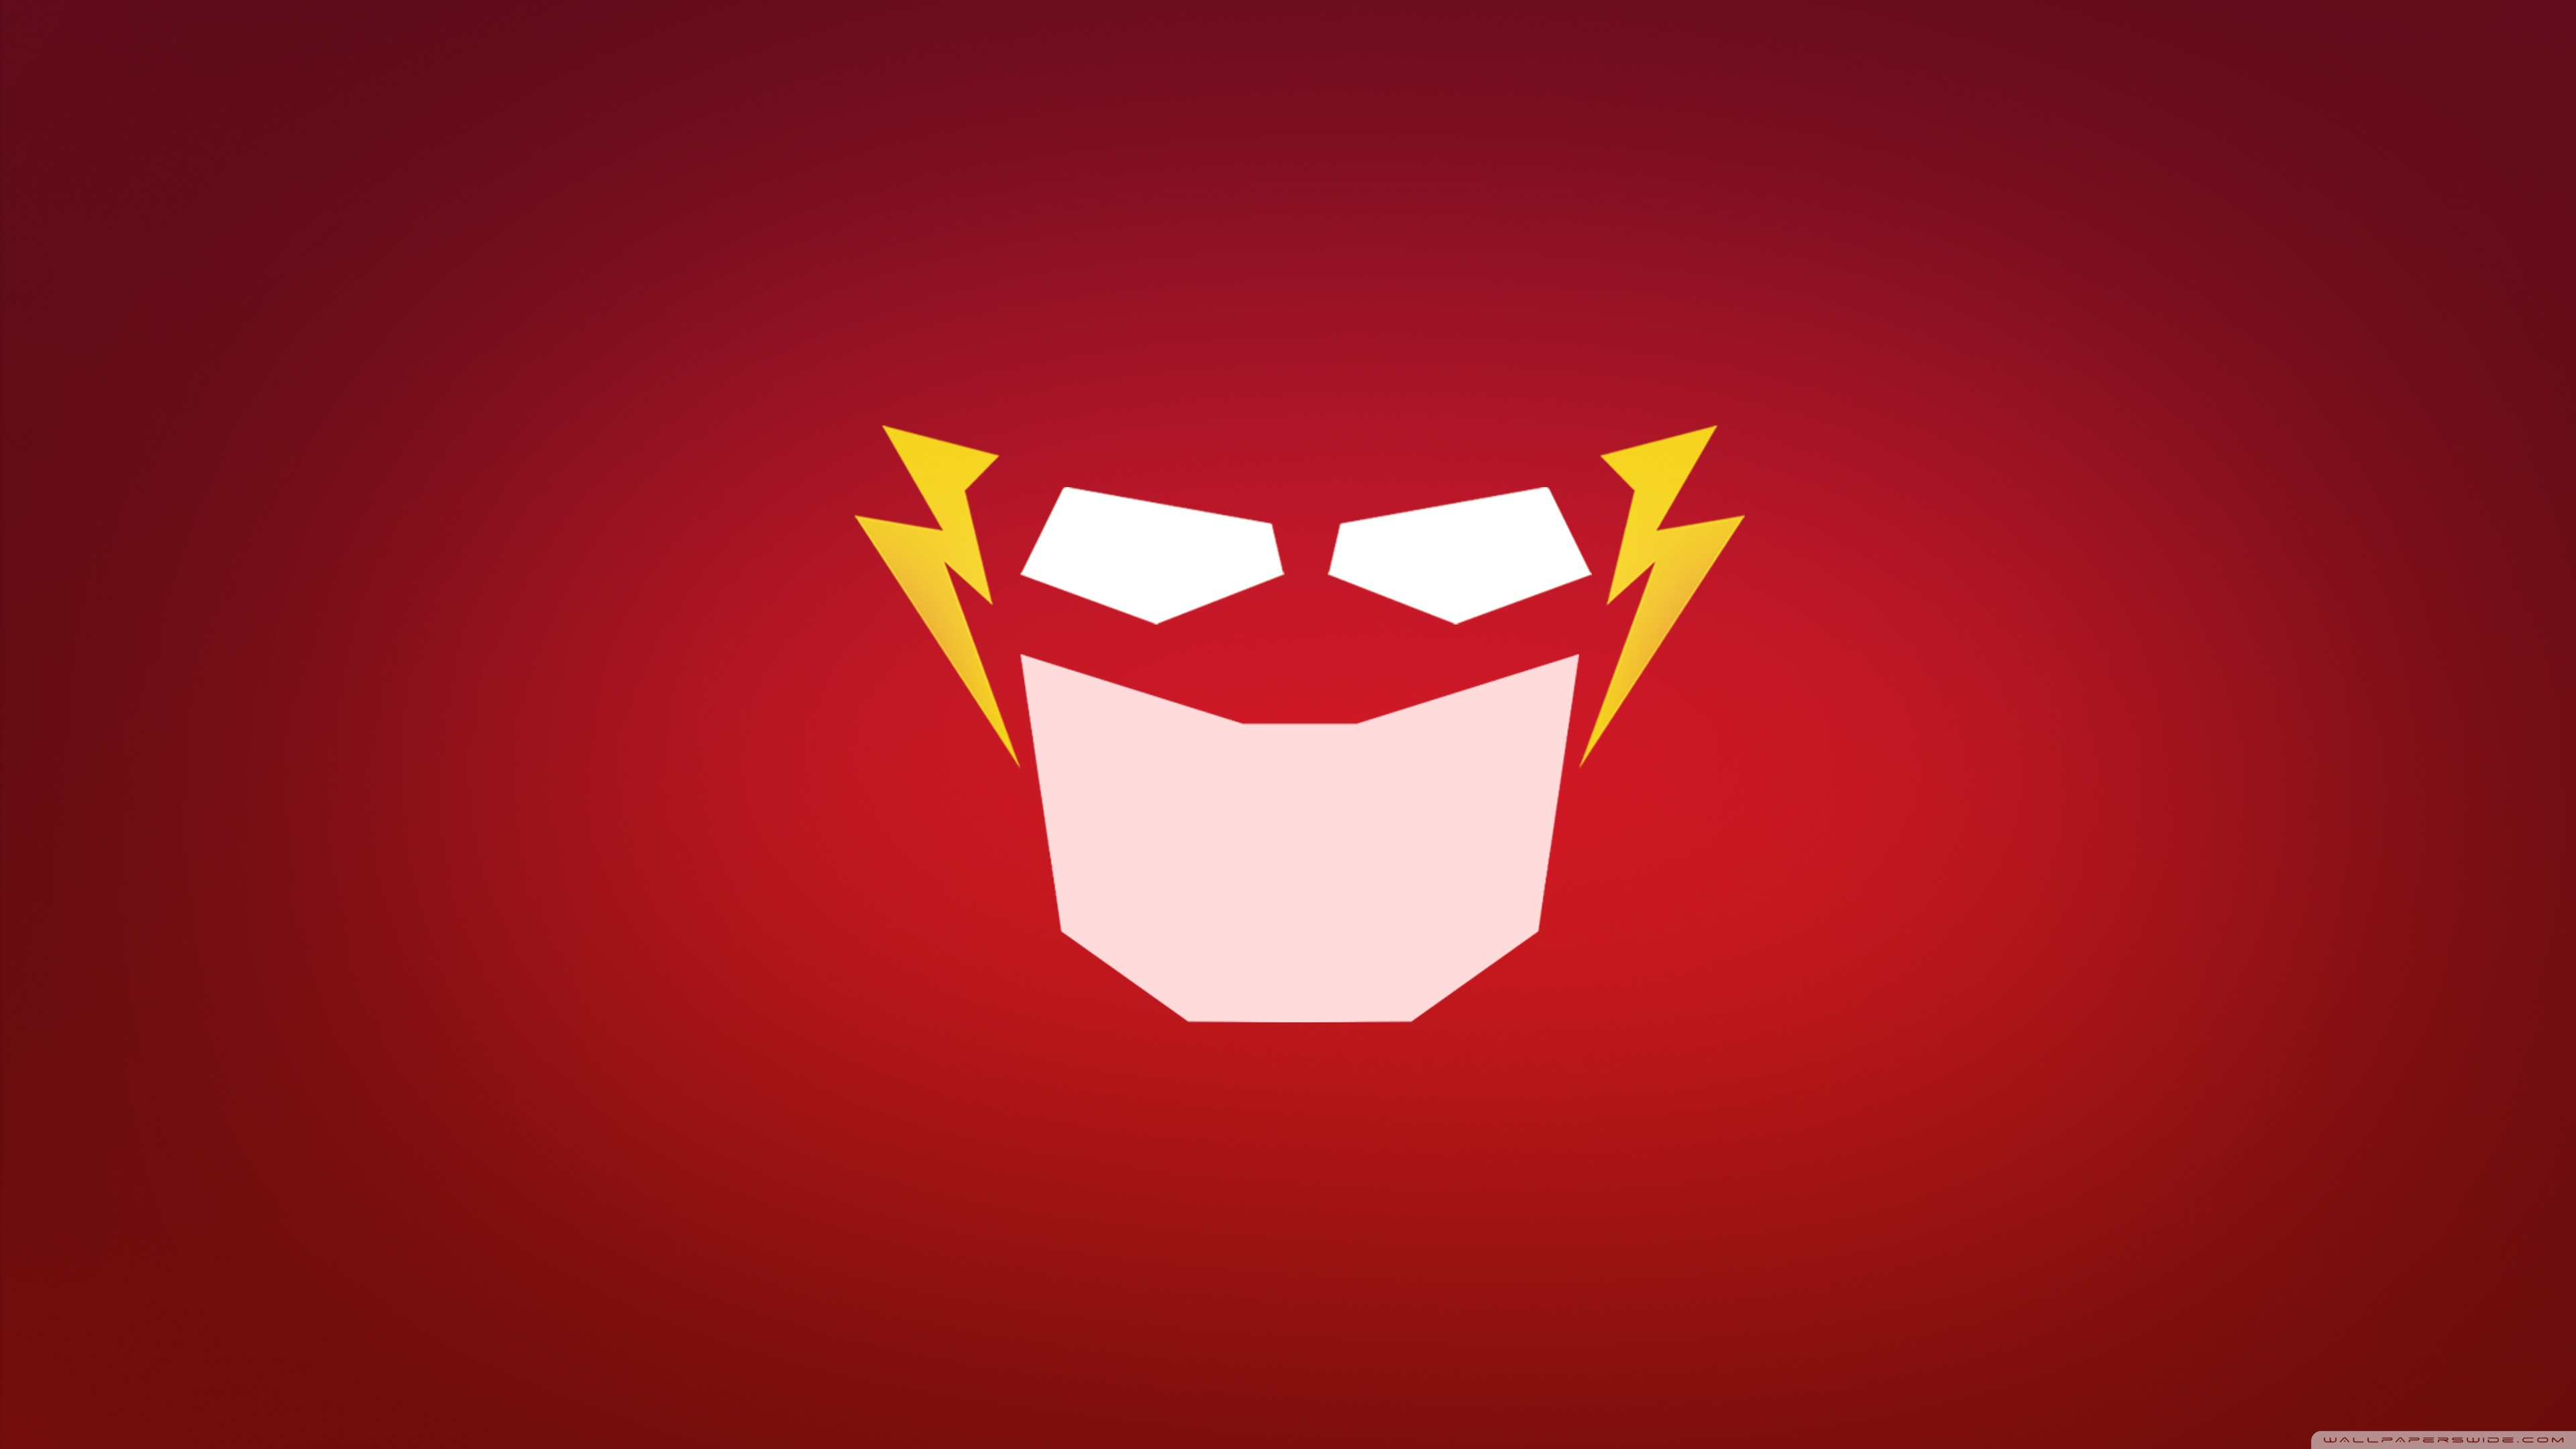 the flash iphone wallpaper - photo #26